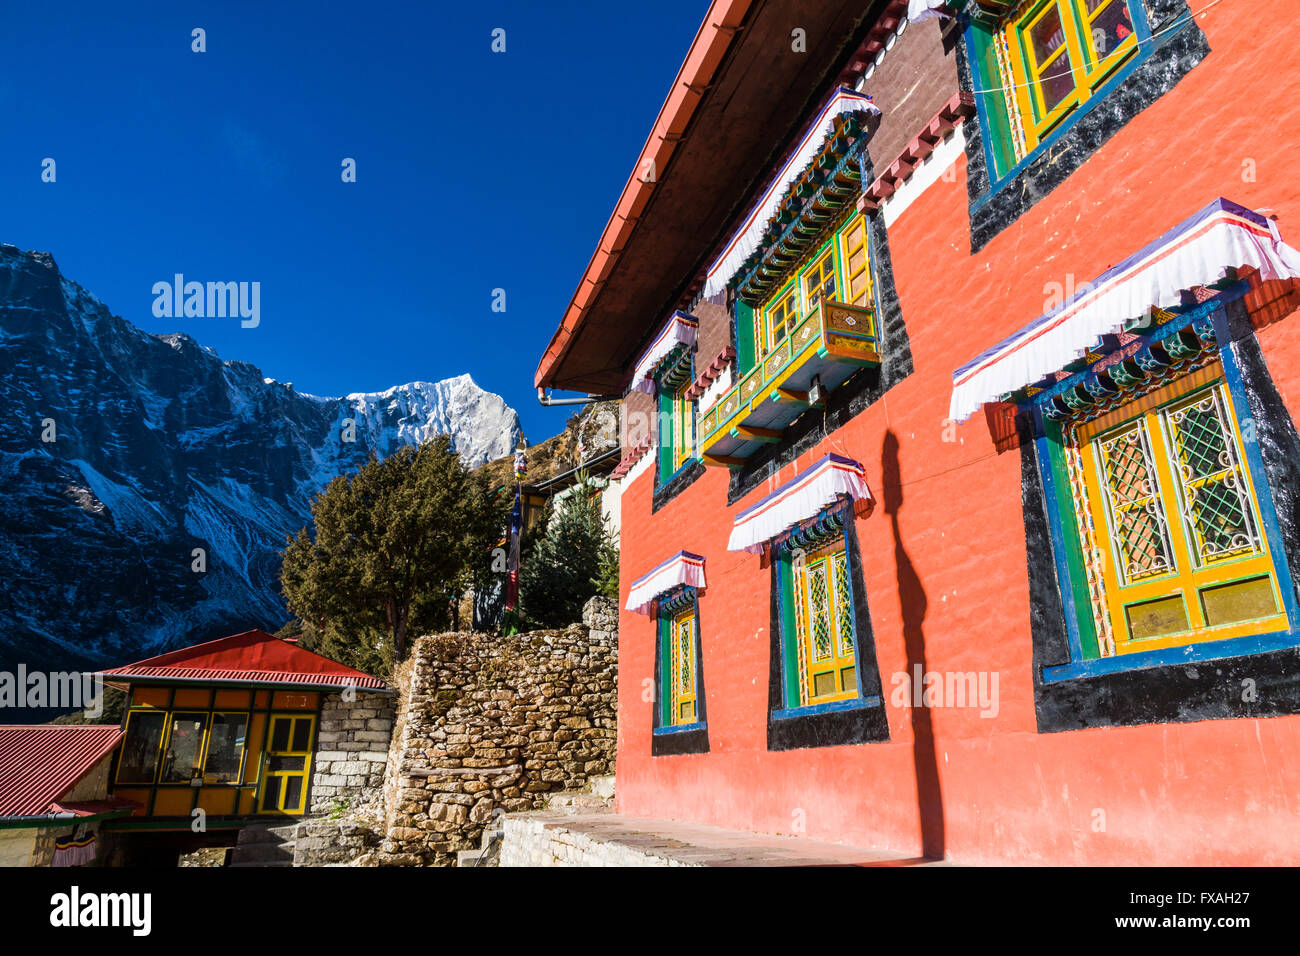 Colourful buildings of the Thame Gompa monastery, situated on a mountain slope, snow covered mountains in the distance, - Stock Image